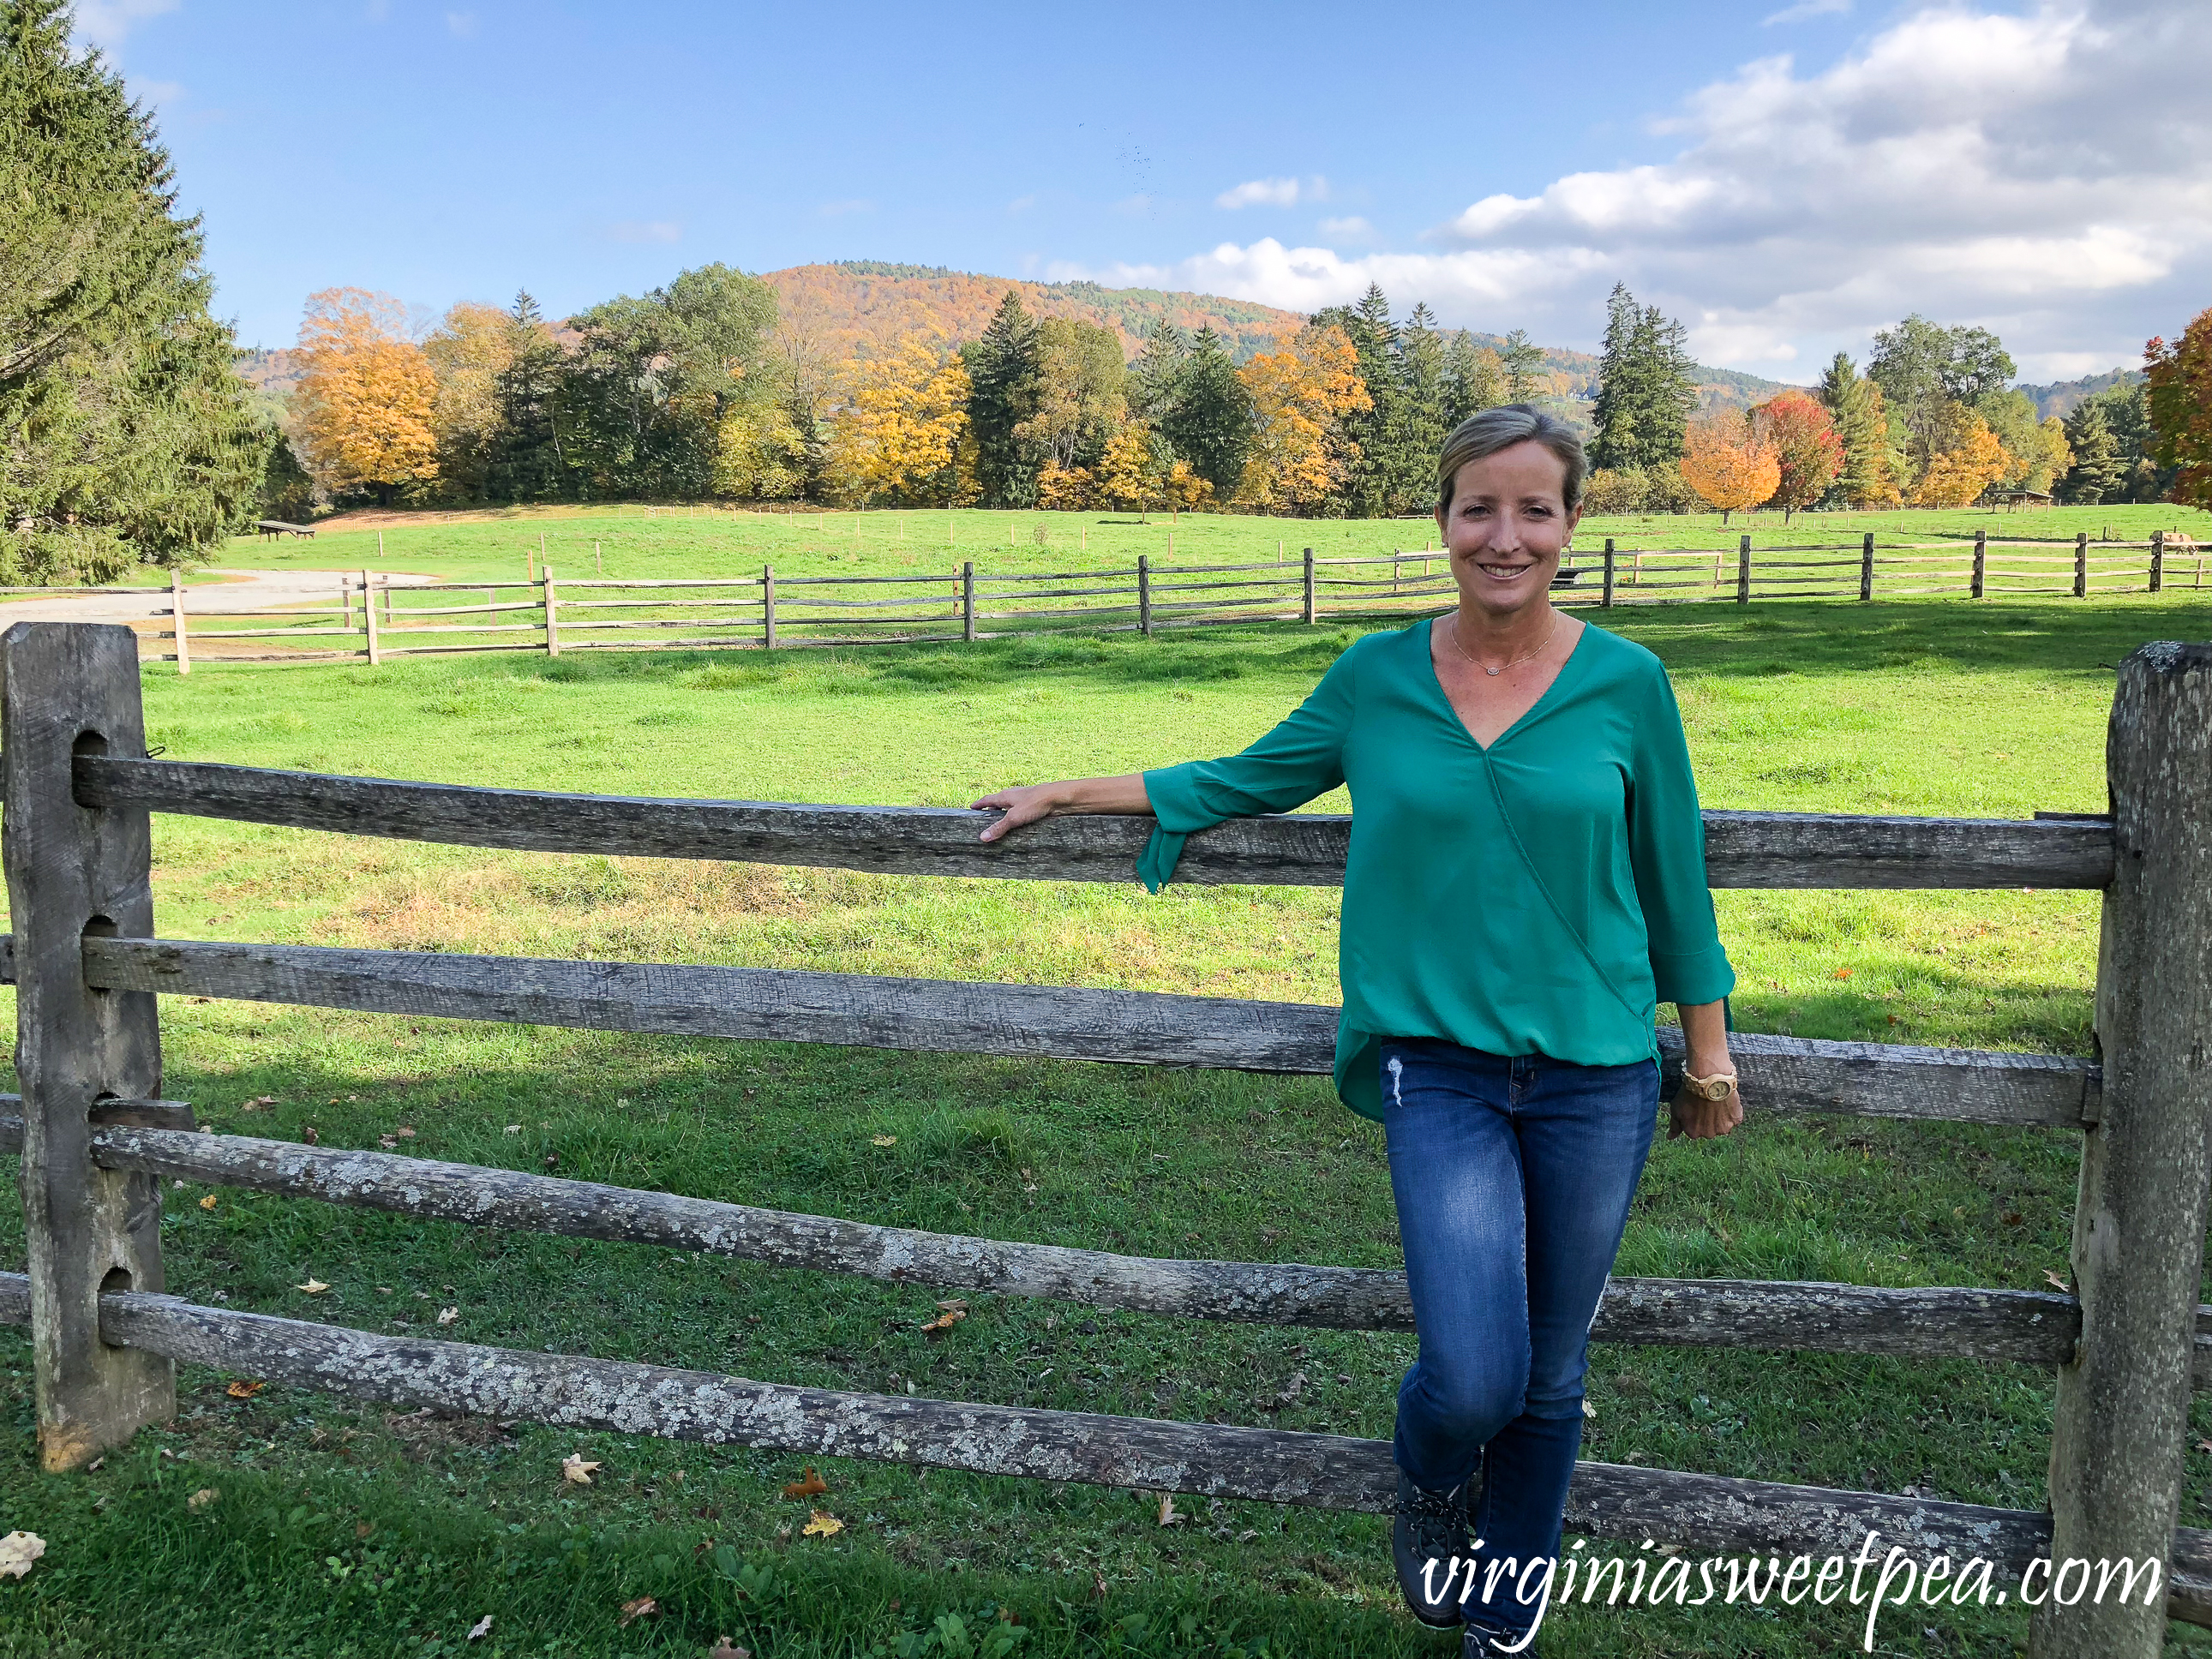 Leaf peeping in Vermont - Billings Farm in Woodstock, Vermont #vermont #fallinvermont